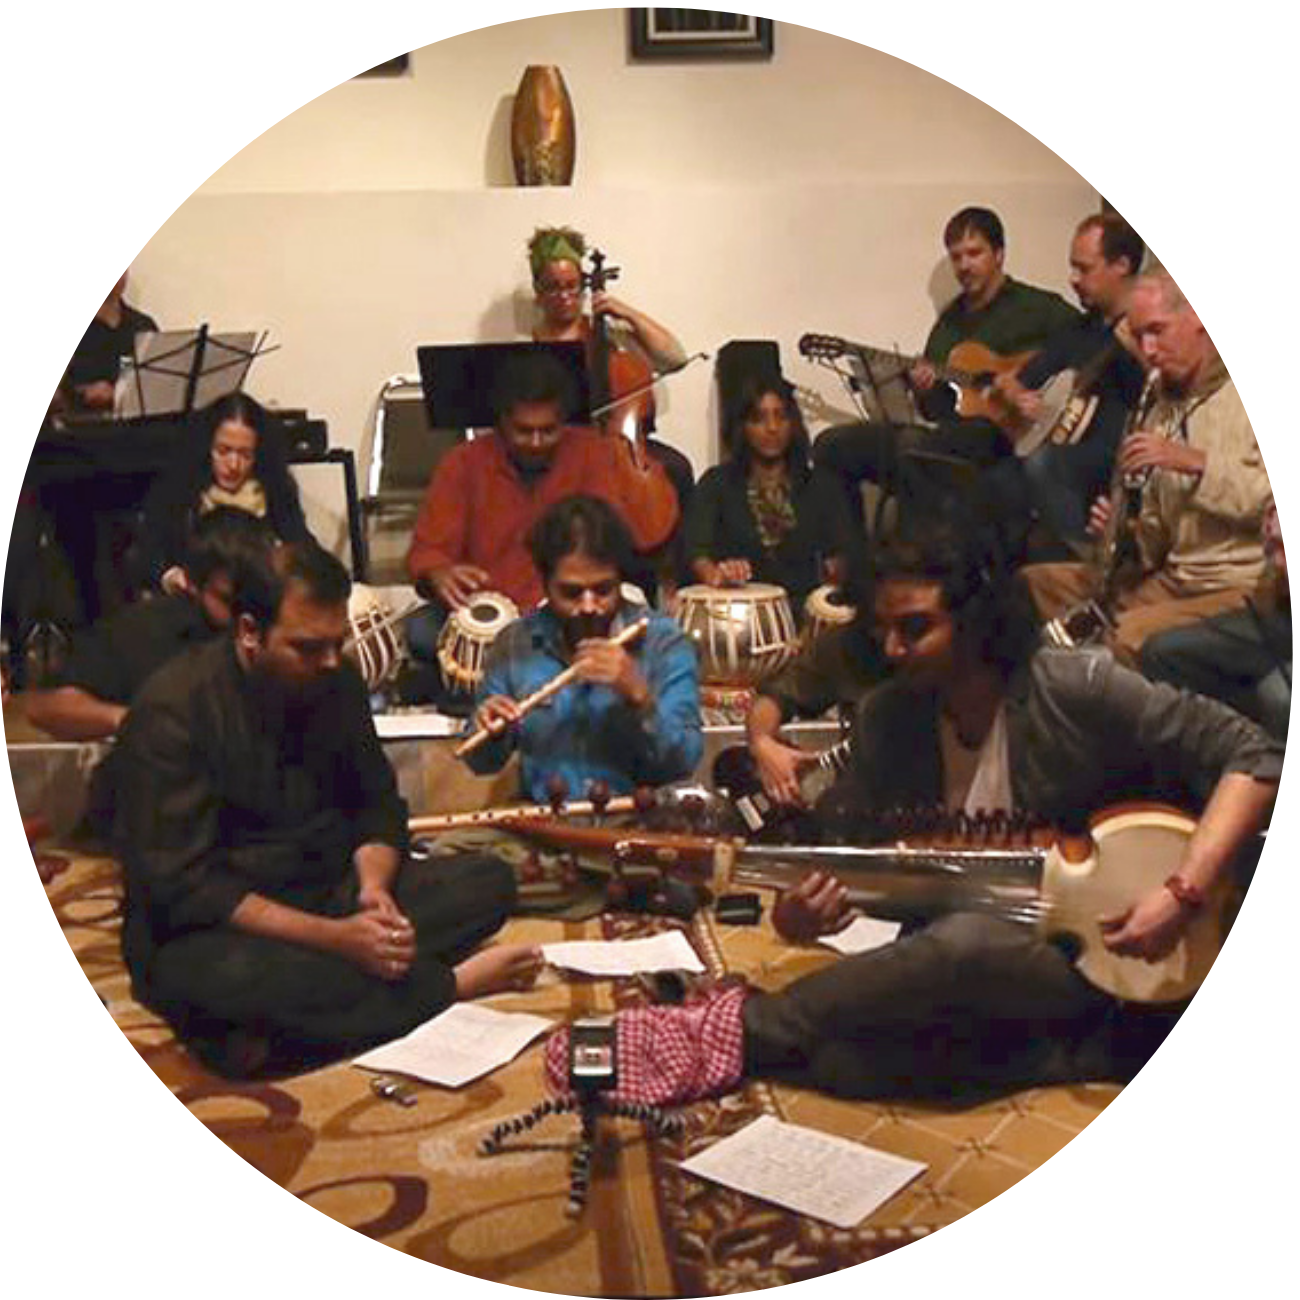 Group of 13 musicians performing music